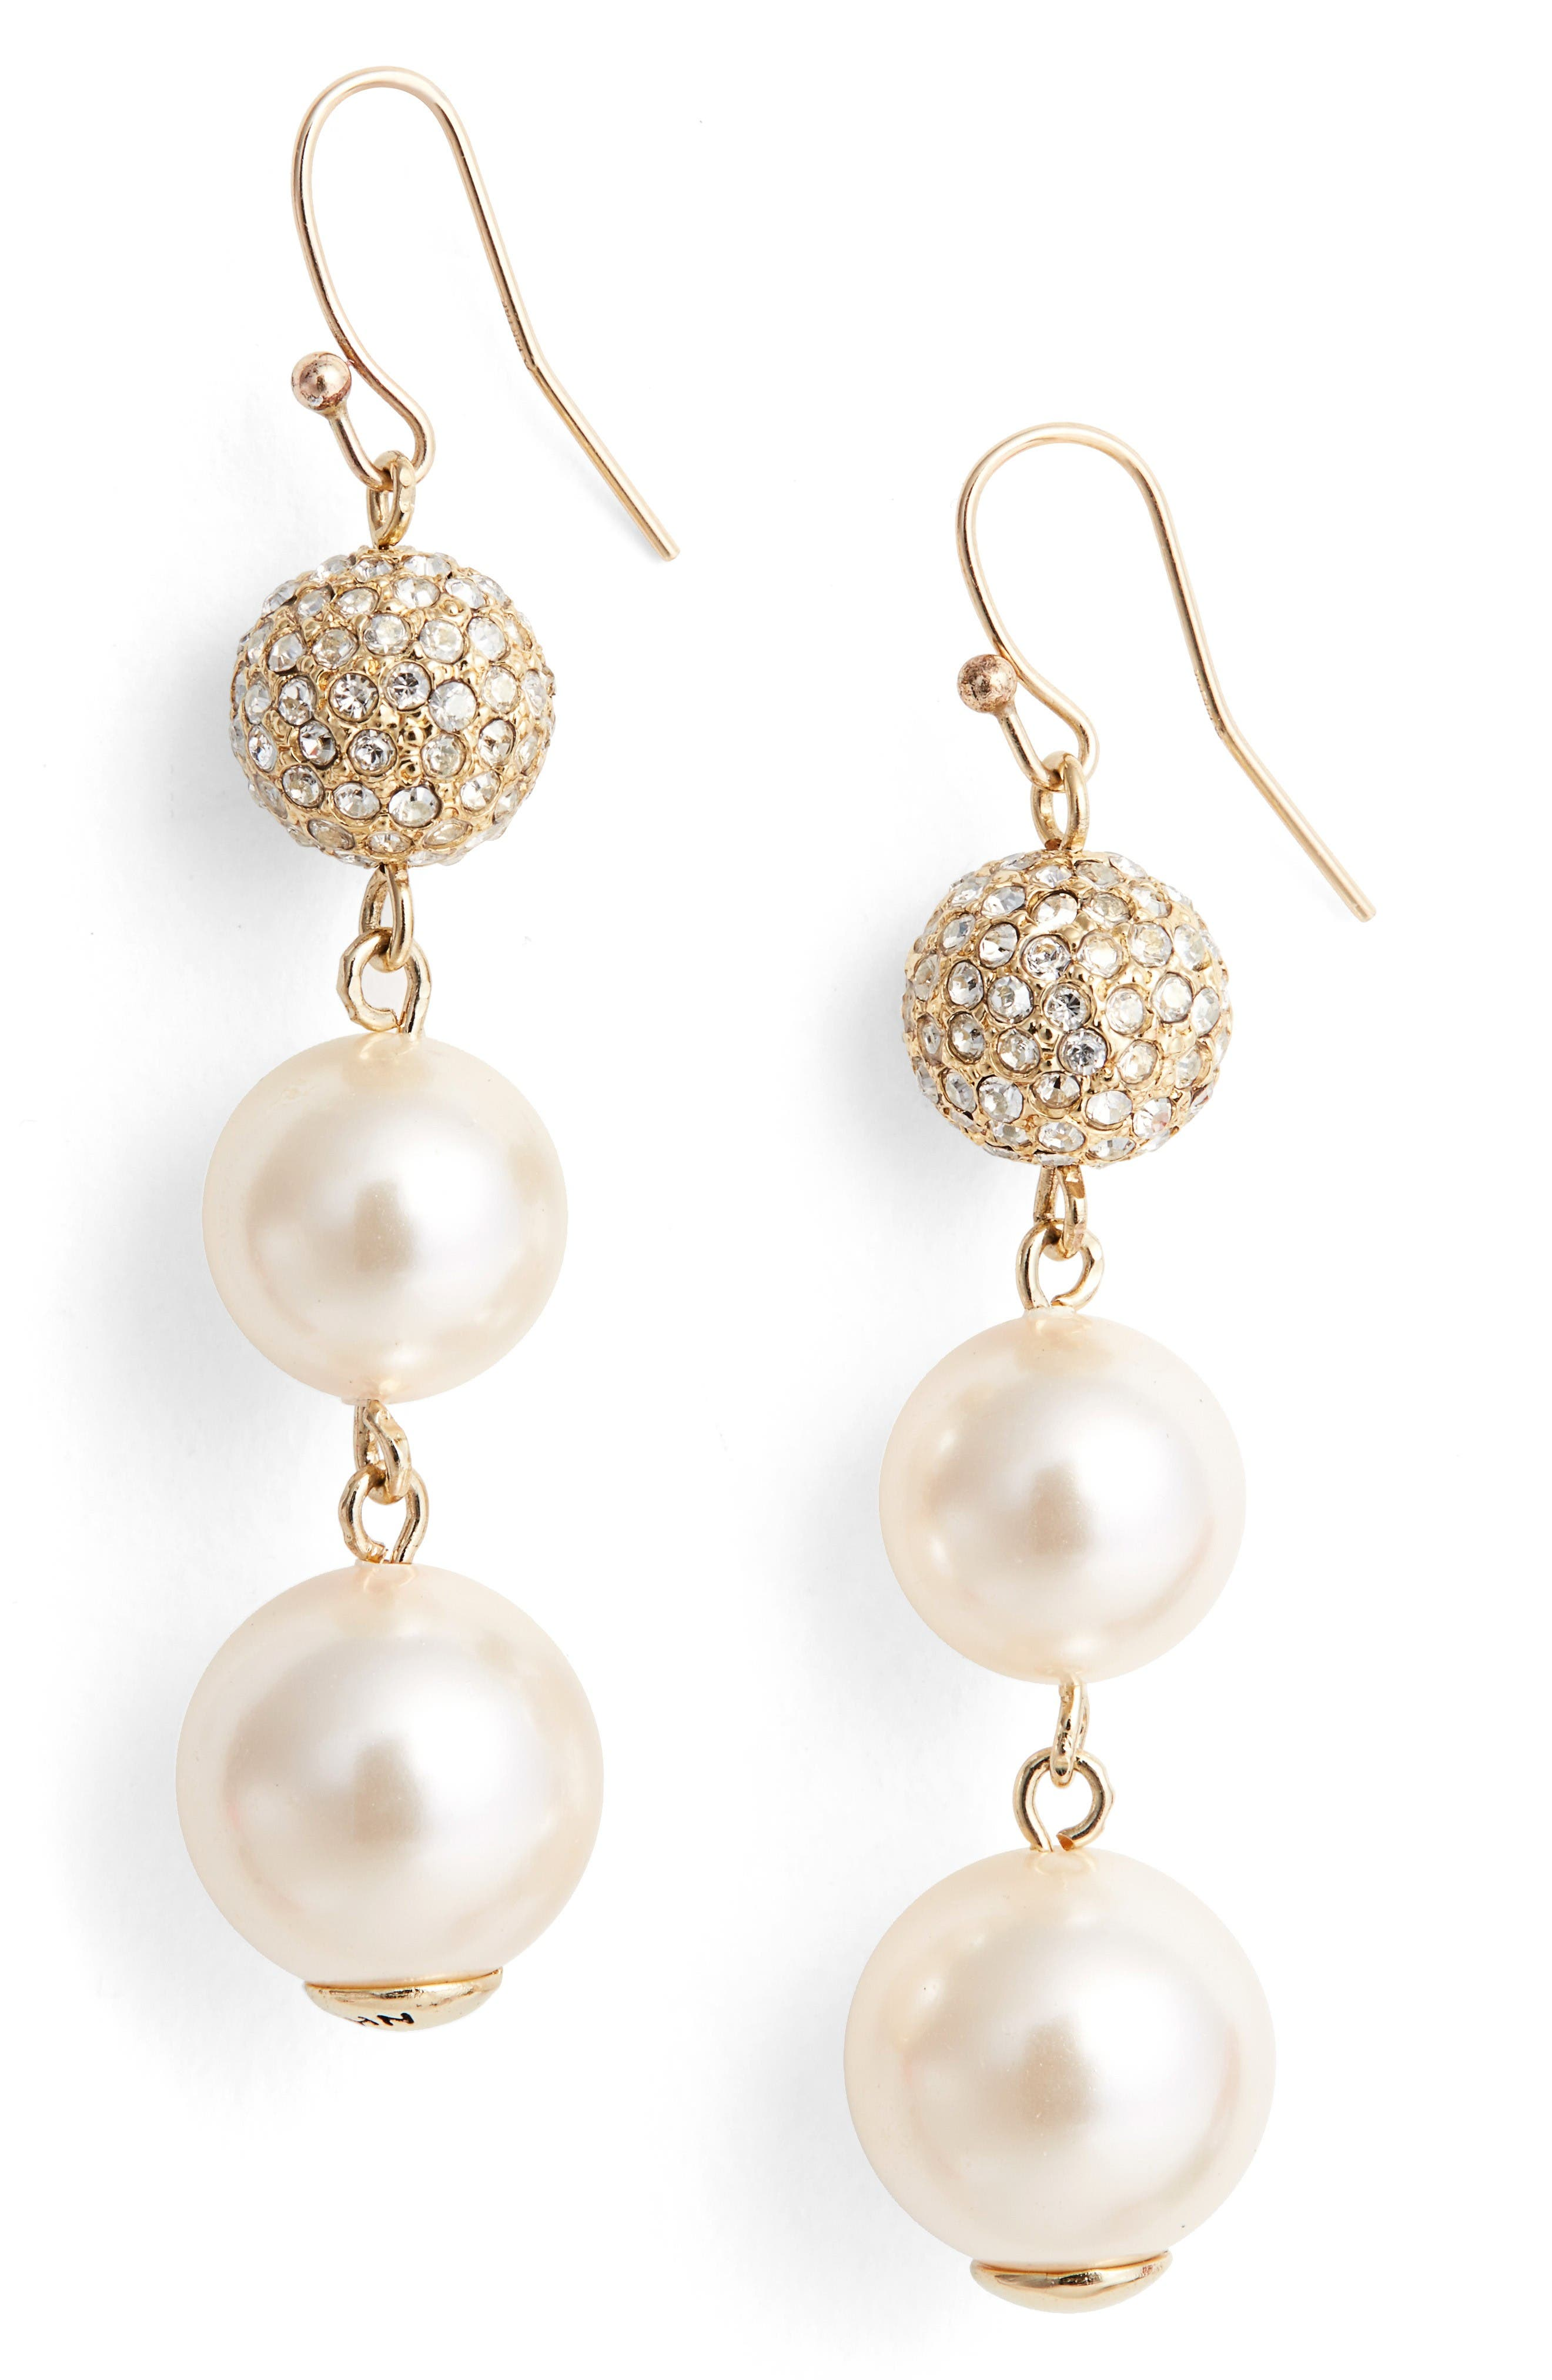 Main Image - St. John Collection Swarovski Imitation Pearl Drop Earrings